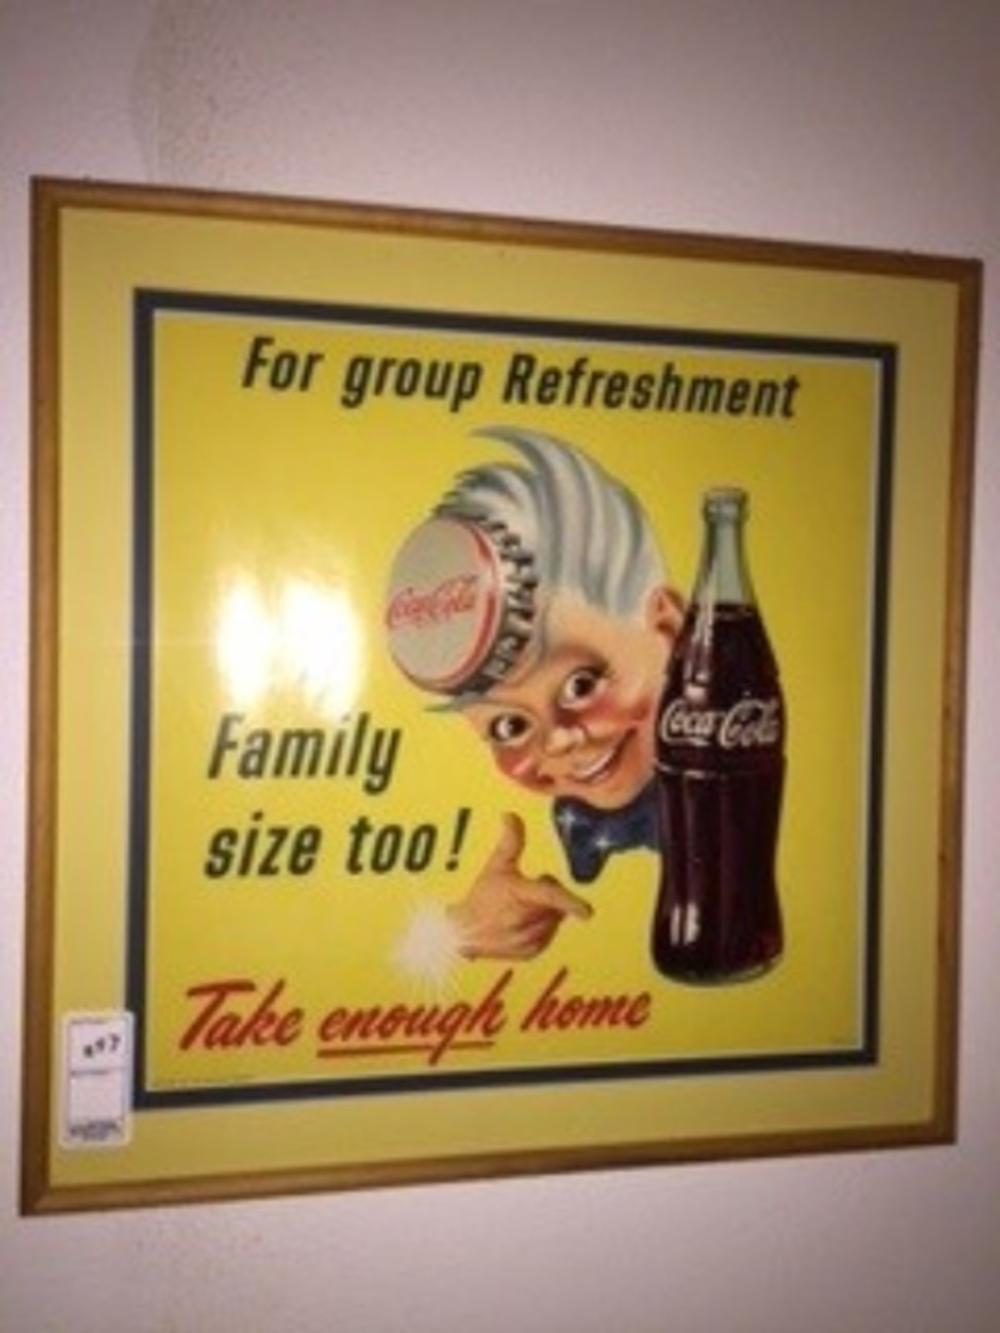 "1955 For Group Refreshment Family Size Too! Sprite Boy Sign 23""x23"""